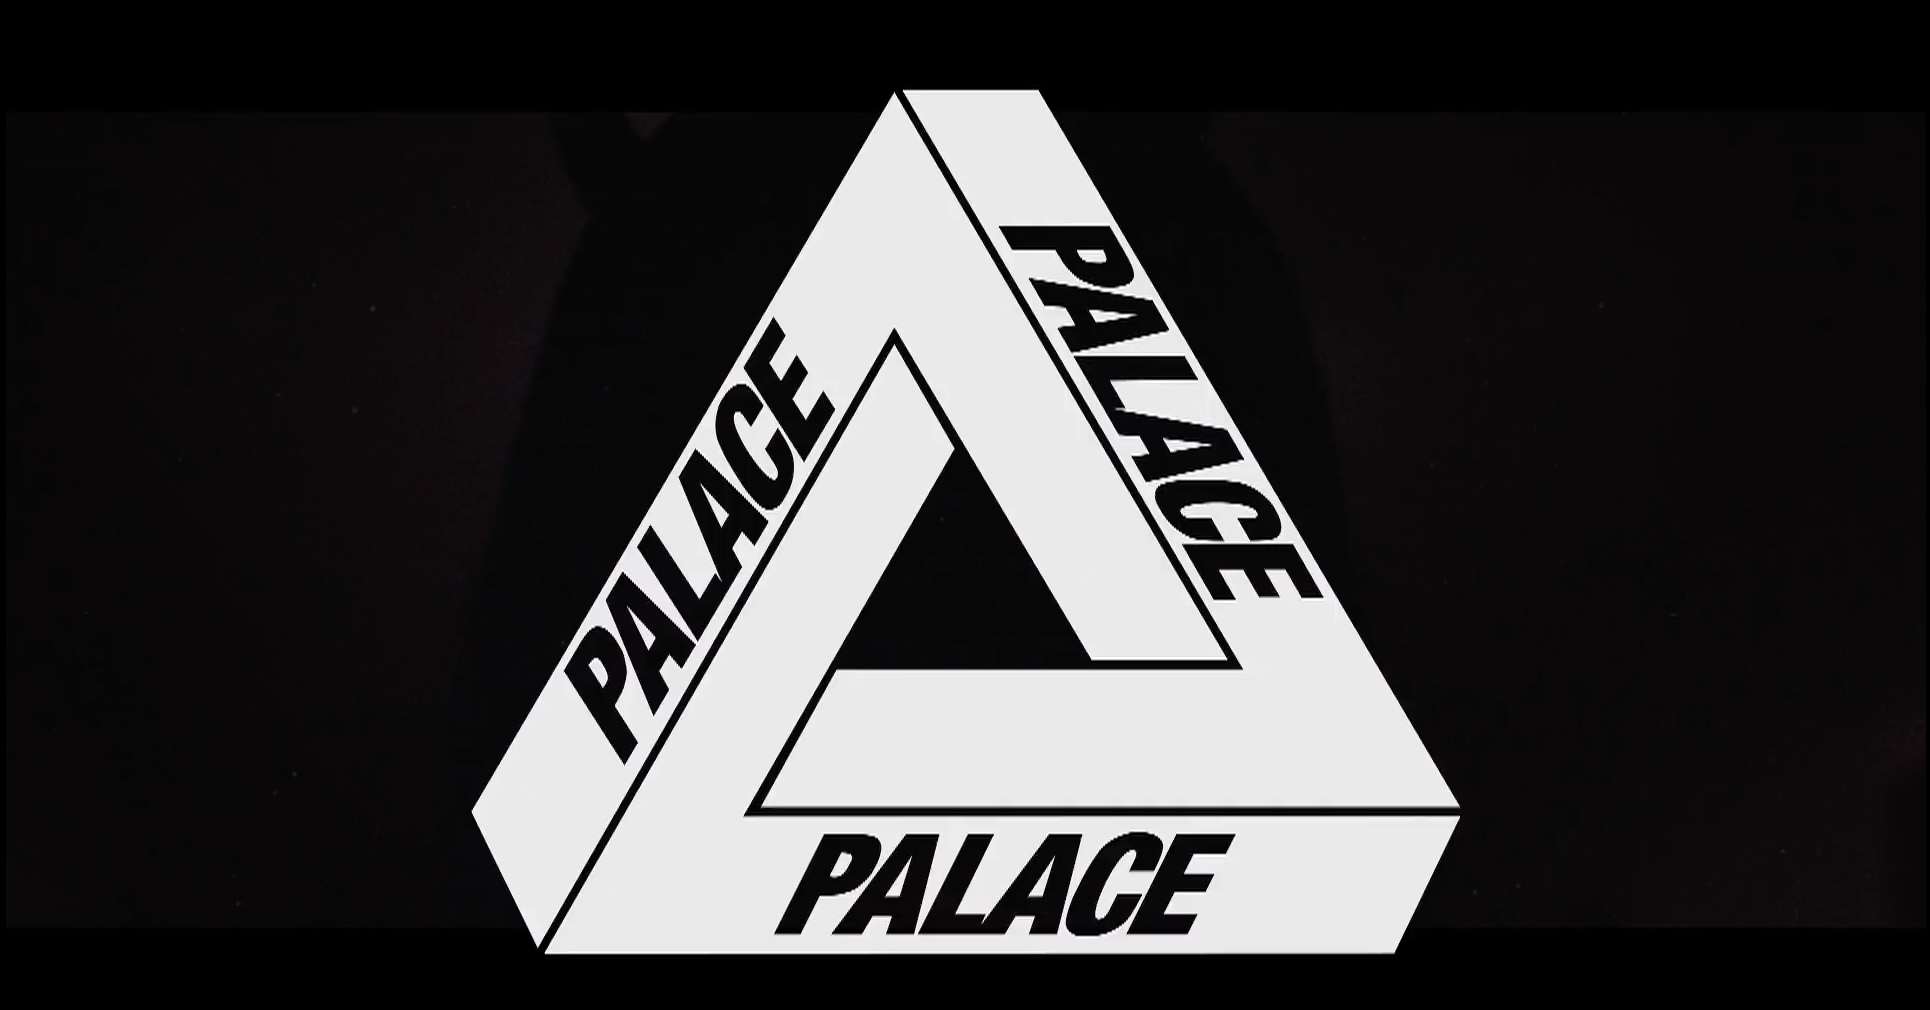 Palace Announce Tokyo Store Opening with Horror Parody Ad